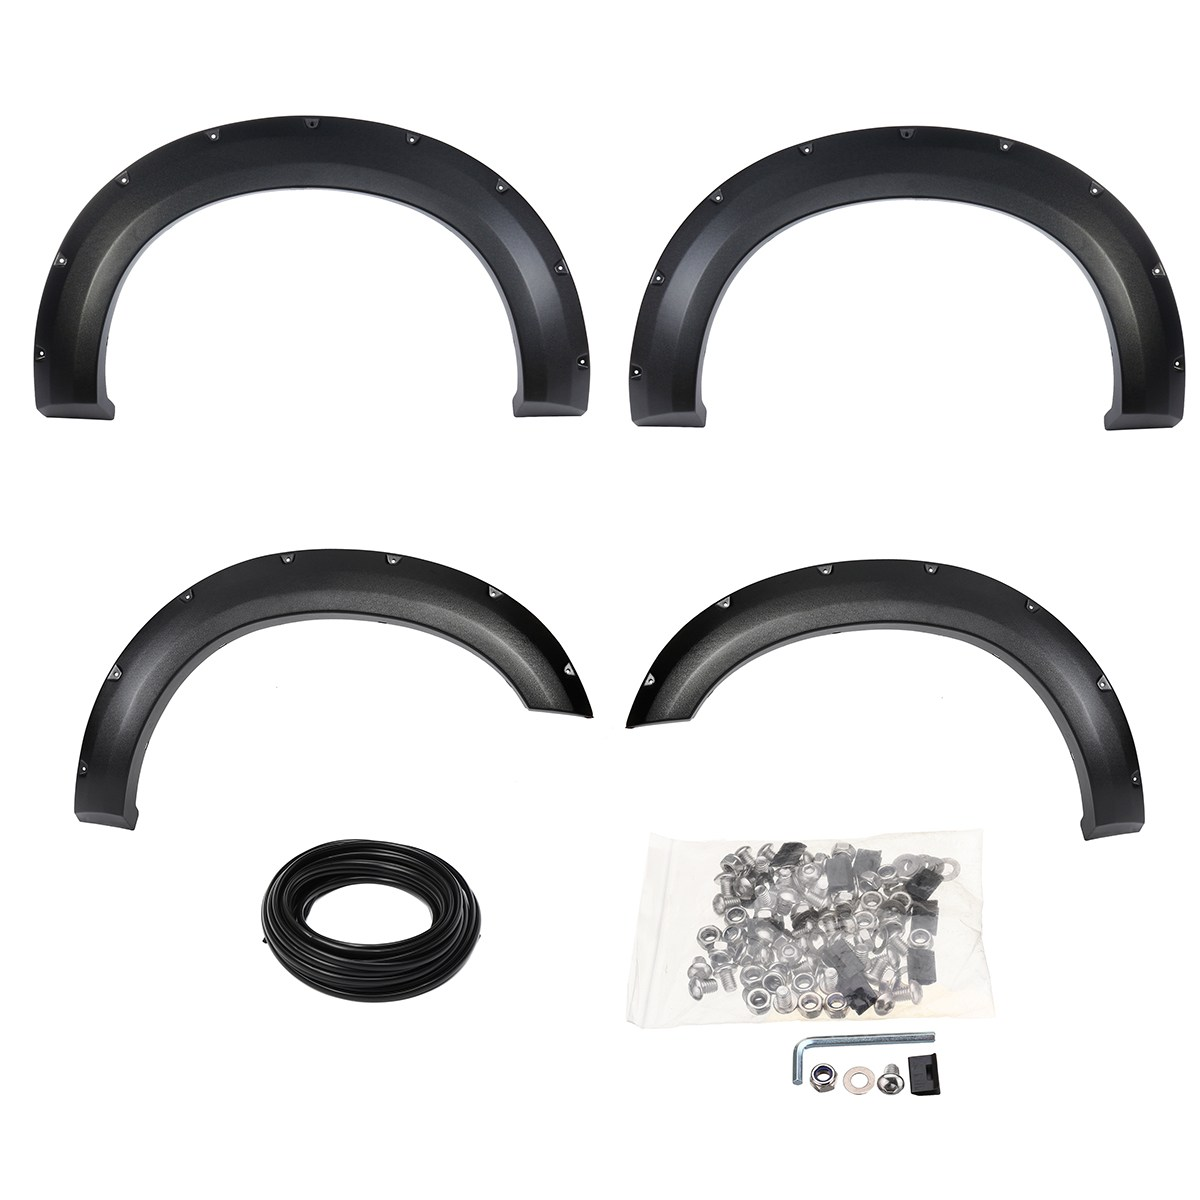 4Pcs Car Front Rear Rivet for FENDER FLARES Style Side Mudguard Wheel Flares For Ford F-250 F-350 2011-2016 egr 752354 rugged look front and rear fender flares